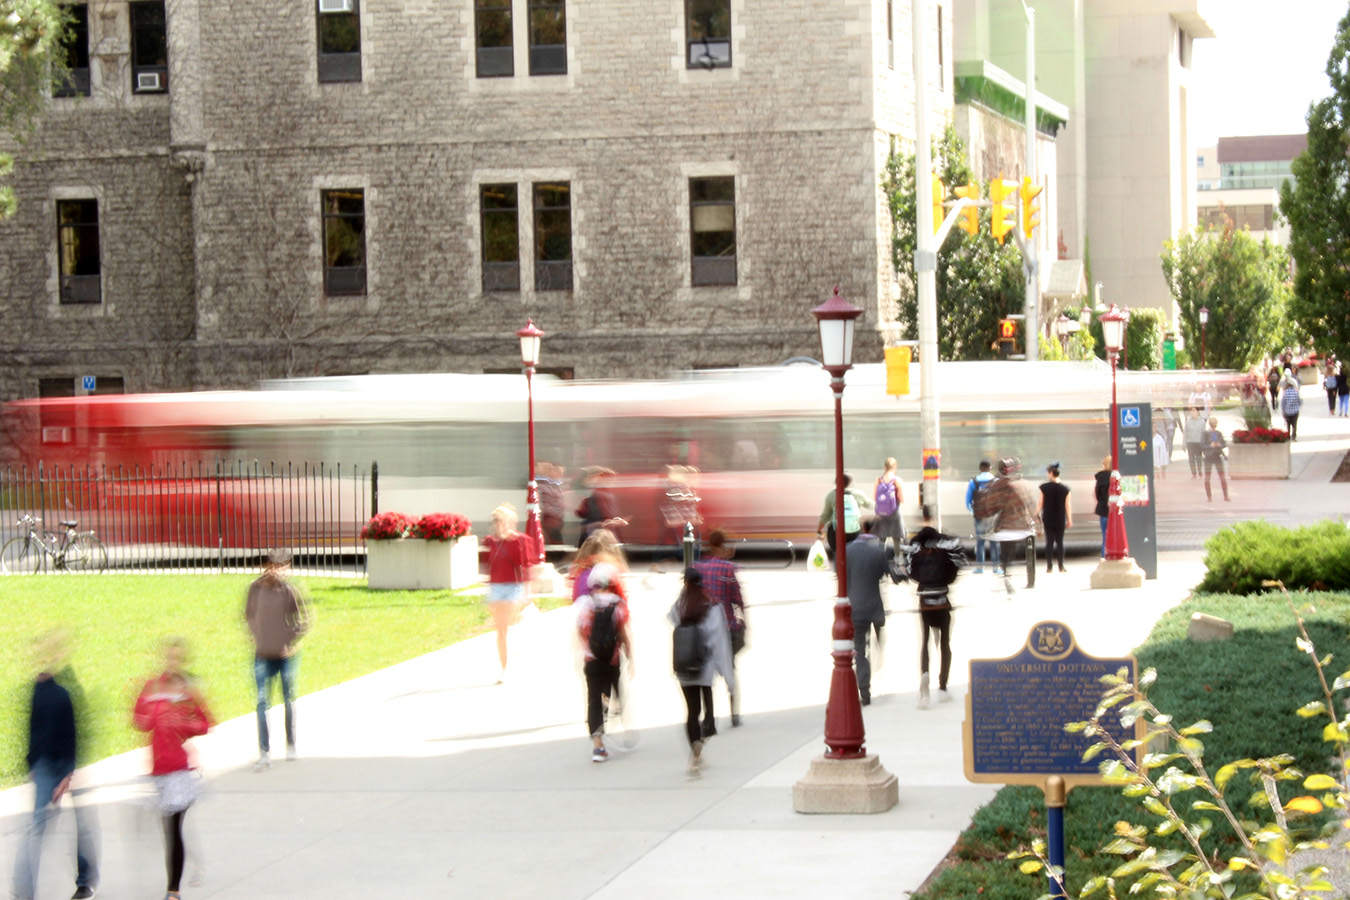 An OC Transpo bus travels along a campus street while pedestrians wait to cross.